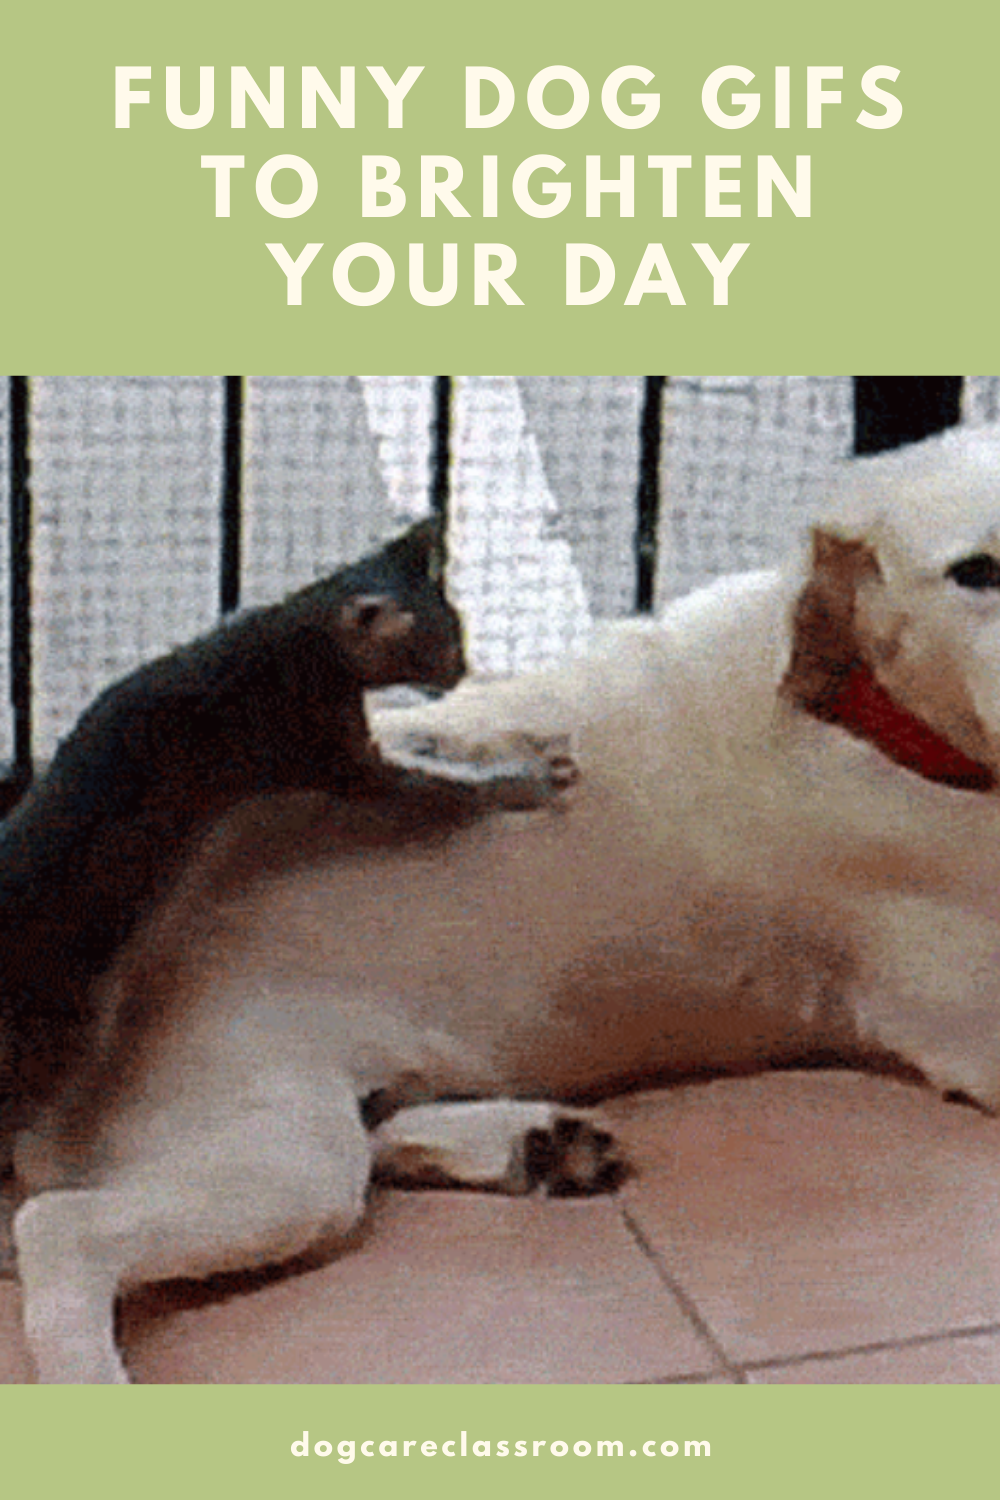 10 Funniest Animated Dog Gifs You Have To See To Believe